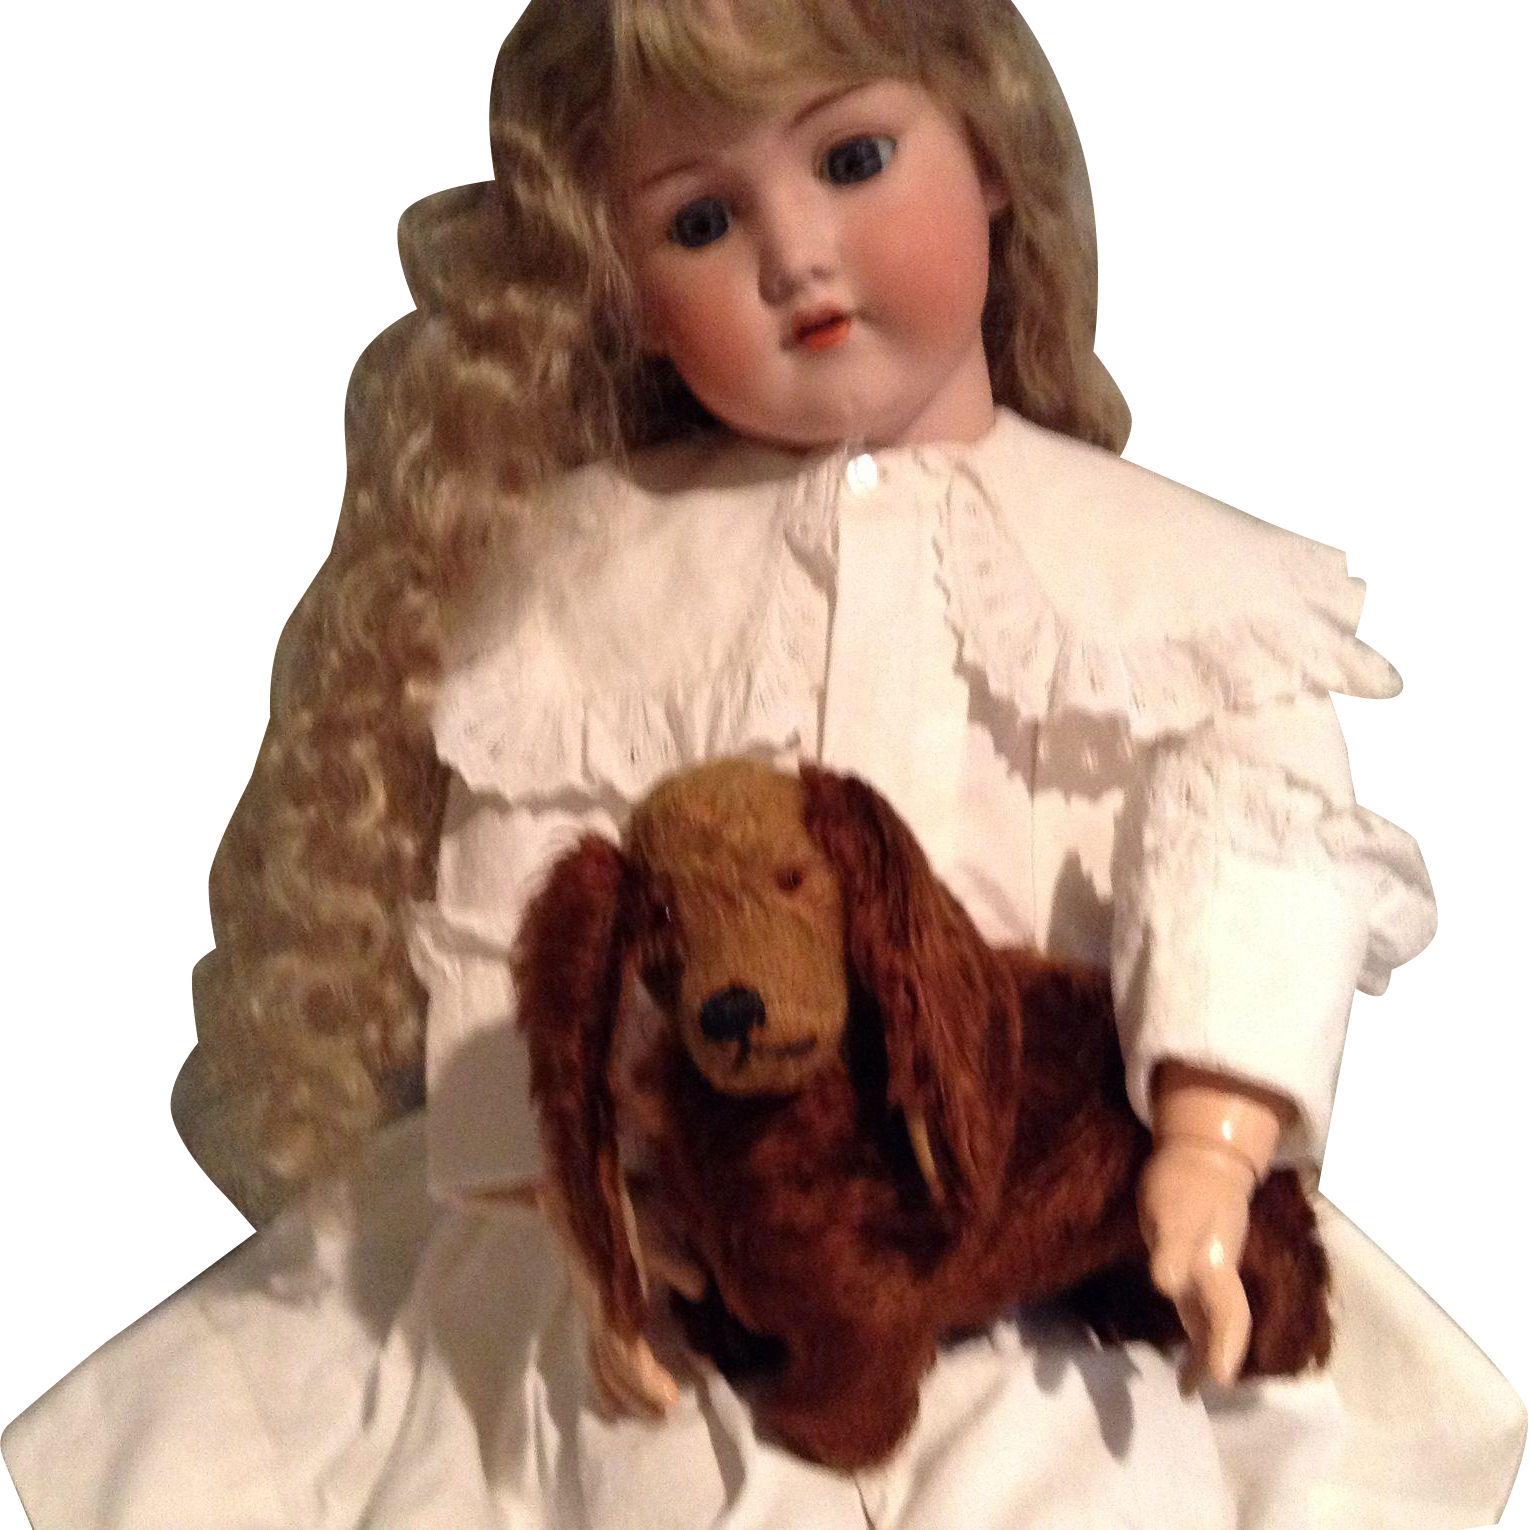 Charming Mohair Dog for Your Doll's Pet